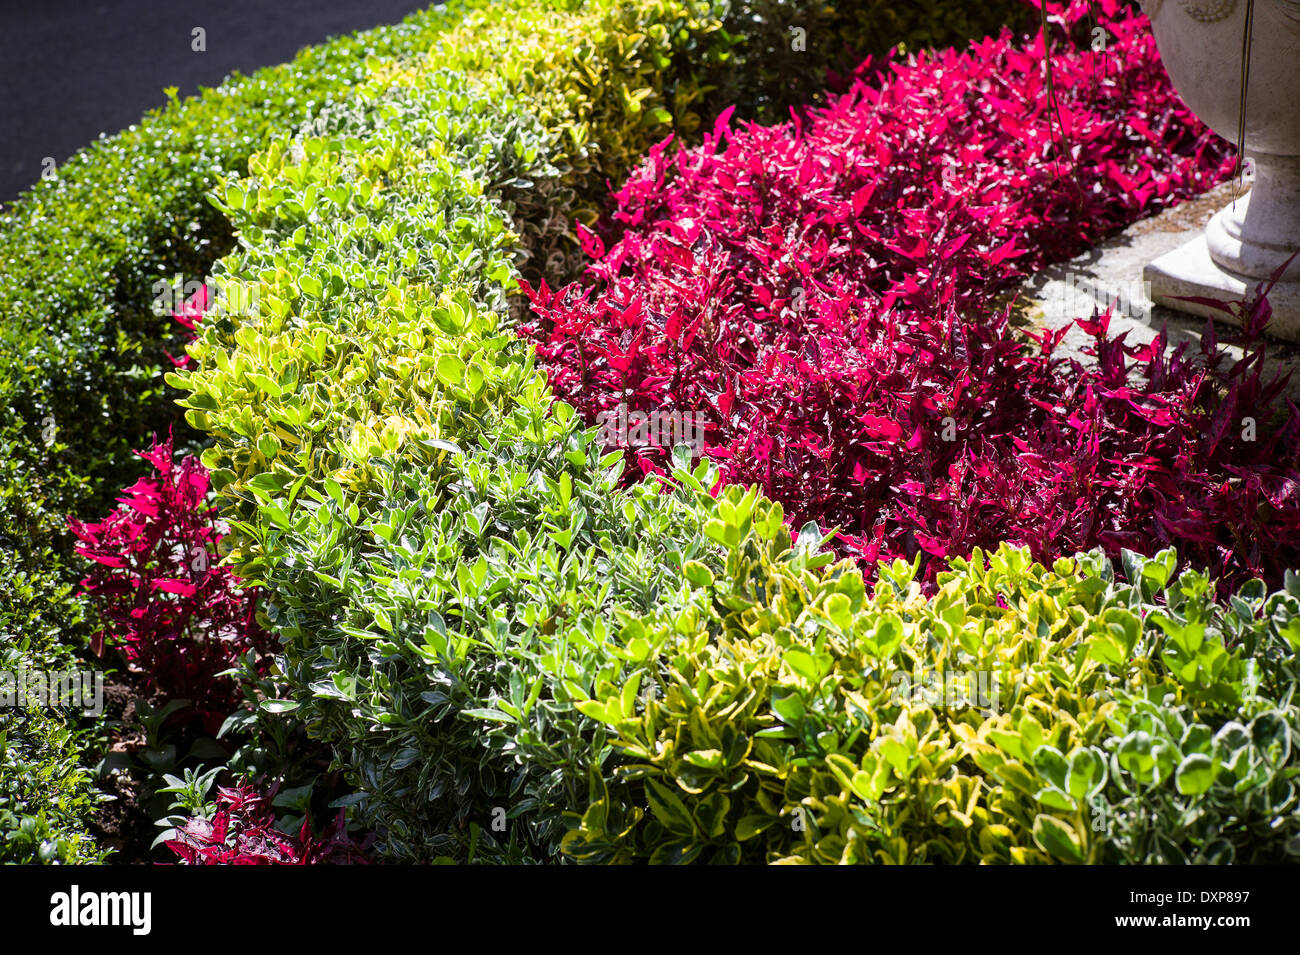 Concentric planting of evergreen shrubs and Iresine